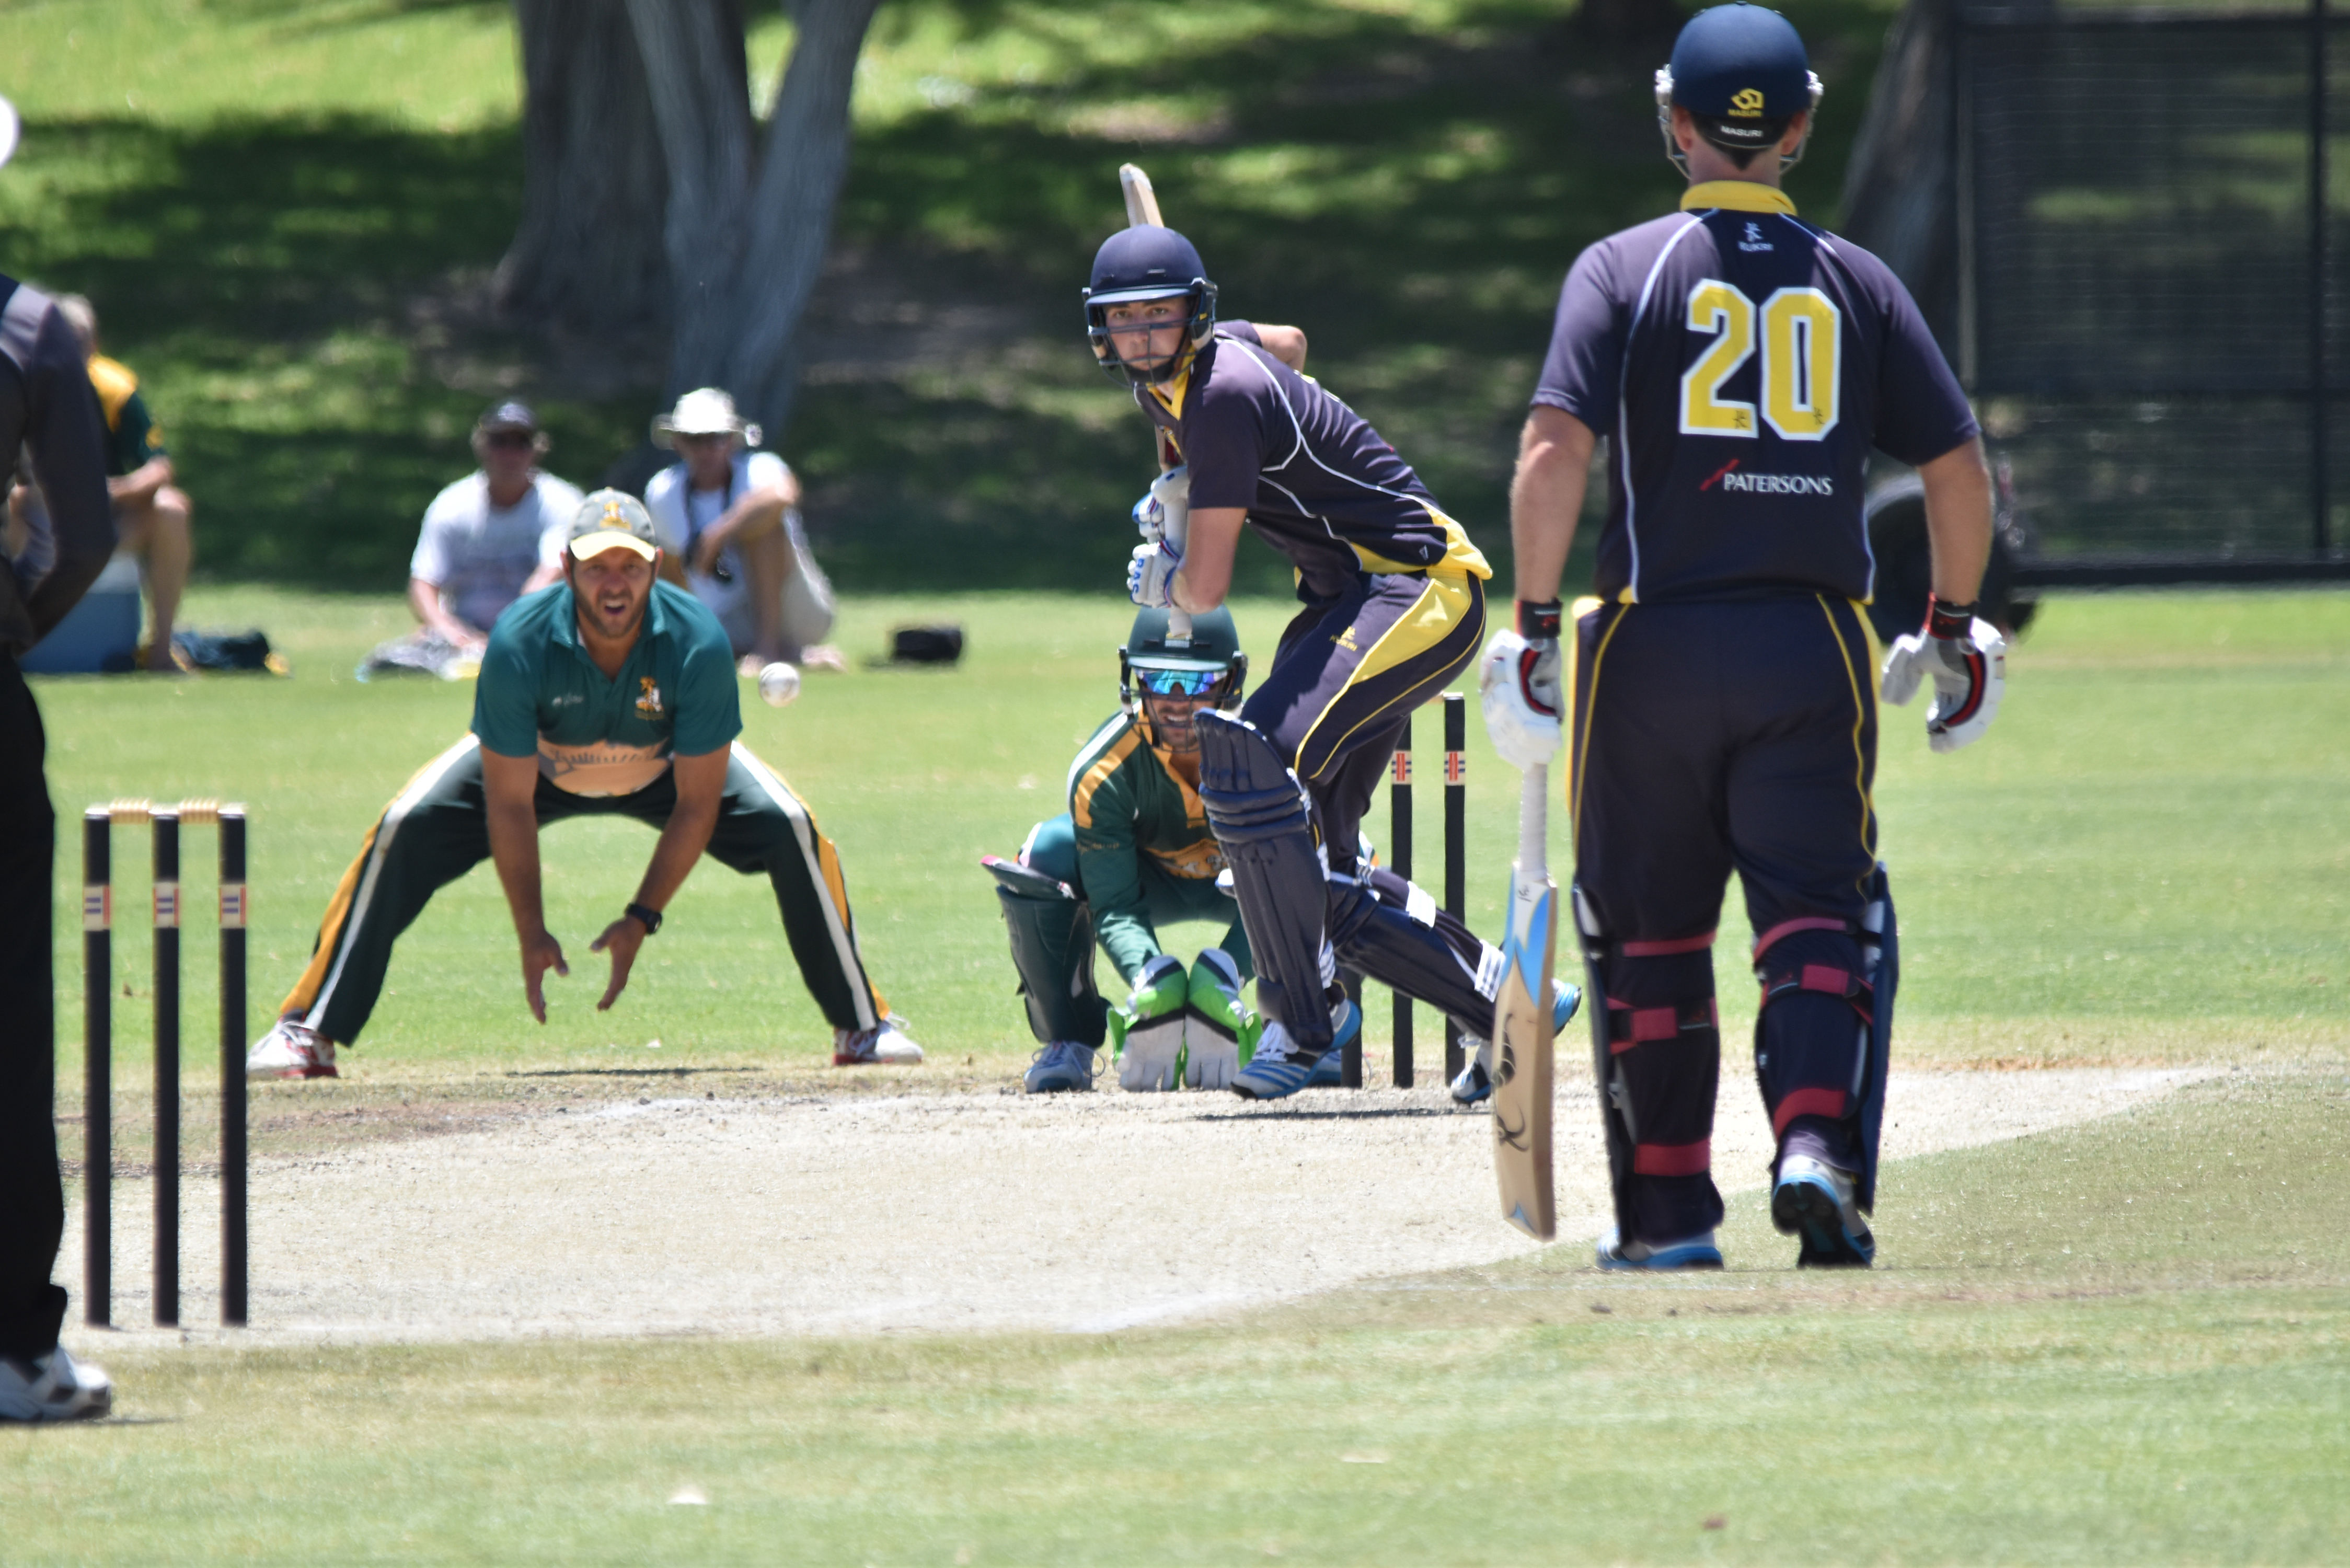 Claremont-Nedlands batting against Joondalup.